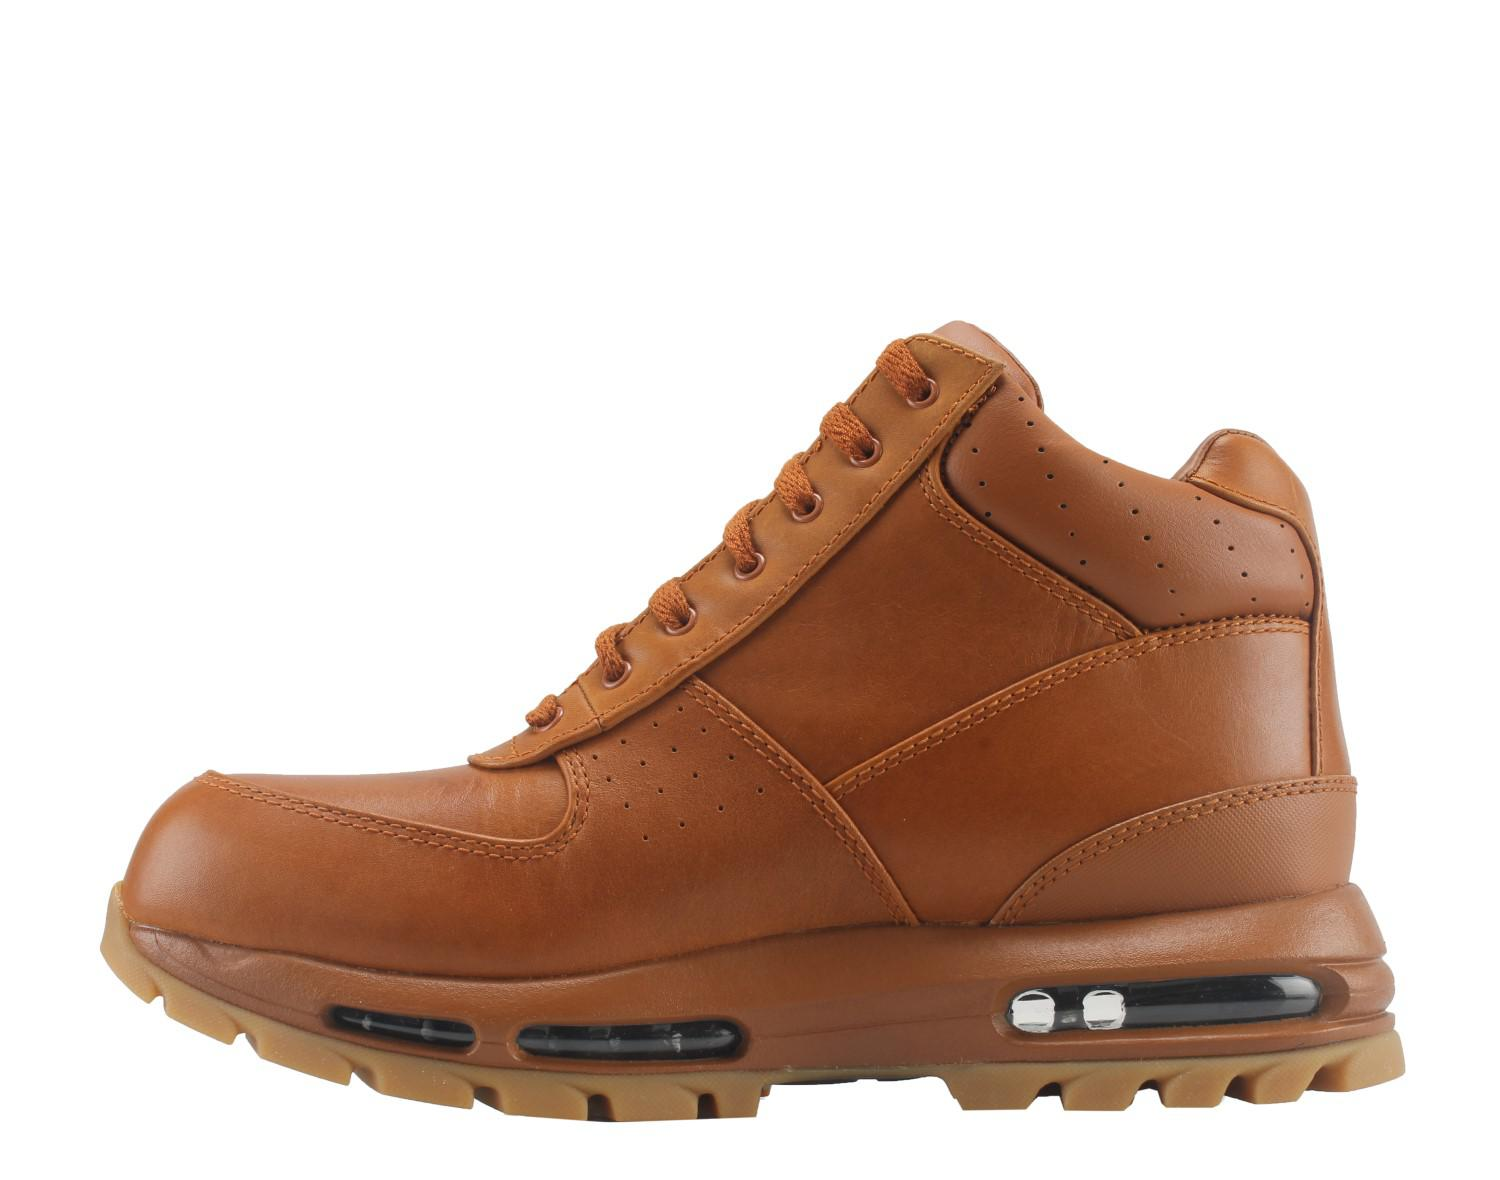 Lyst Nike Air Max Goadome Acg Boots Size 12 In Brown For Men